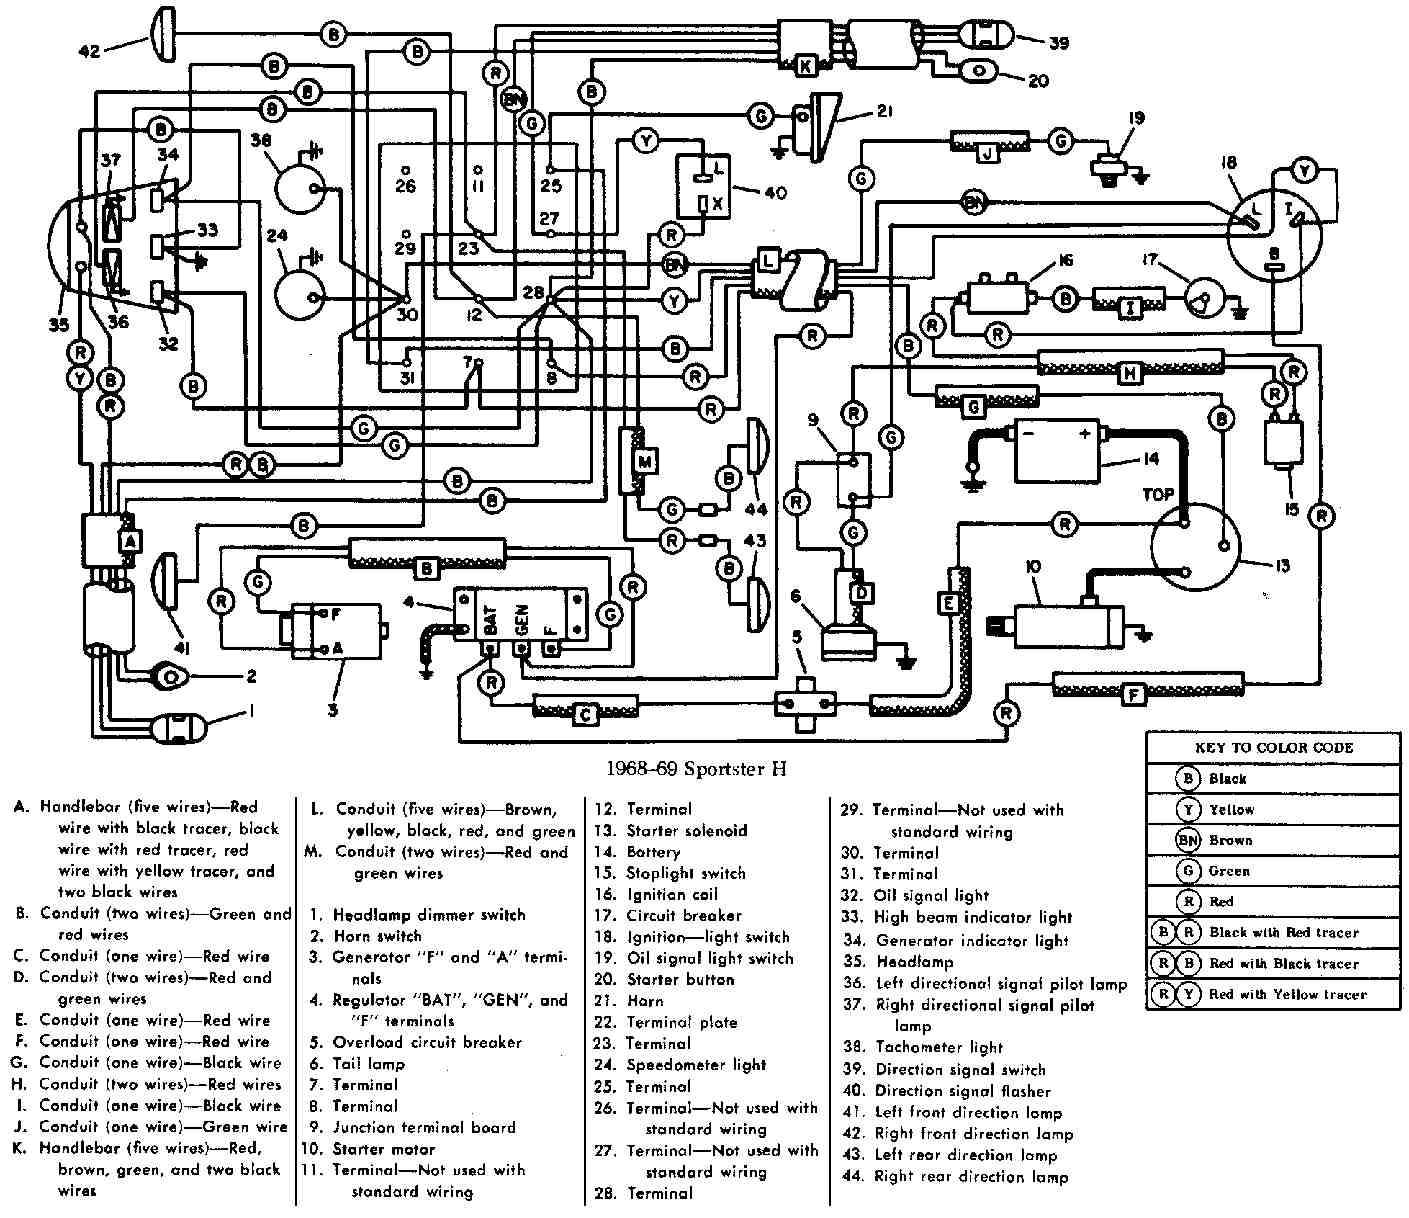 wiring diagram for 2009 harley touring [ 1409 x 1218 Pixel ]